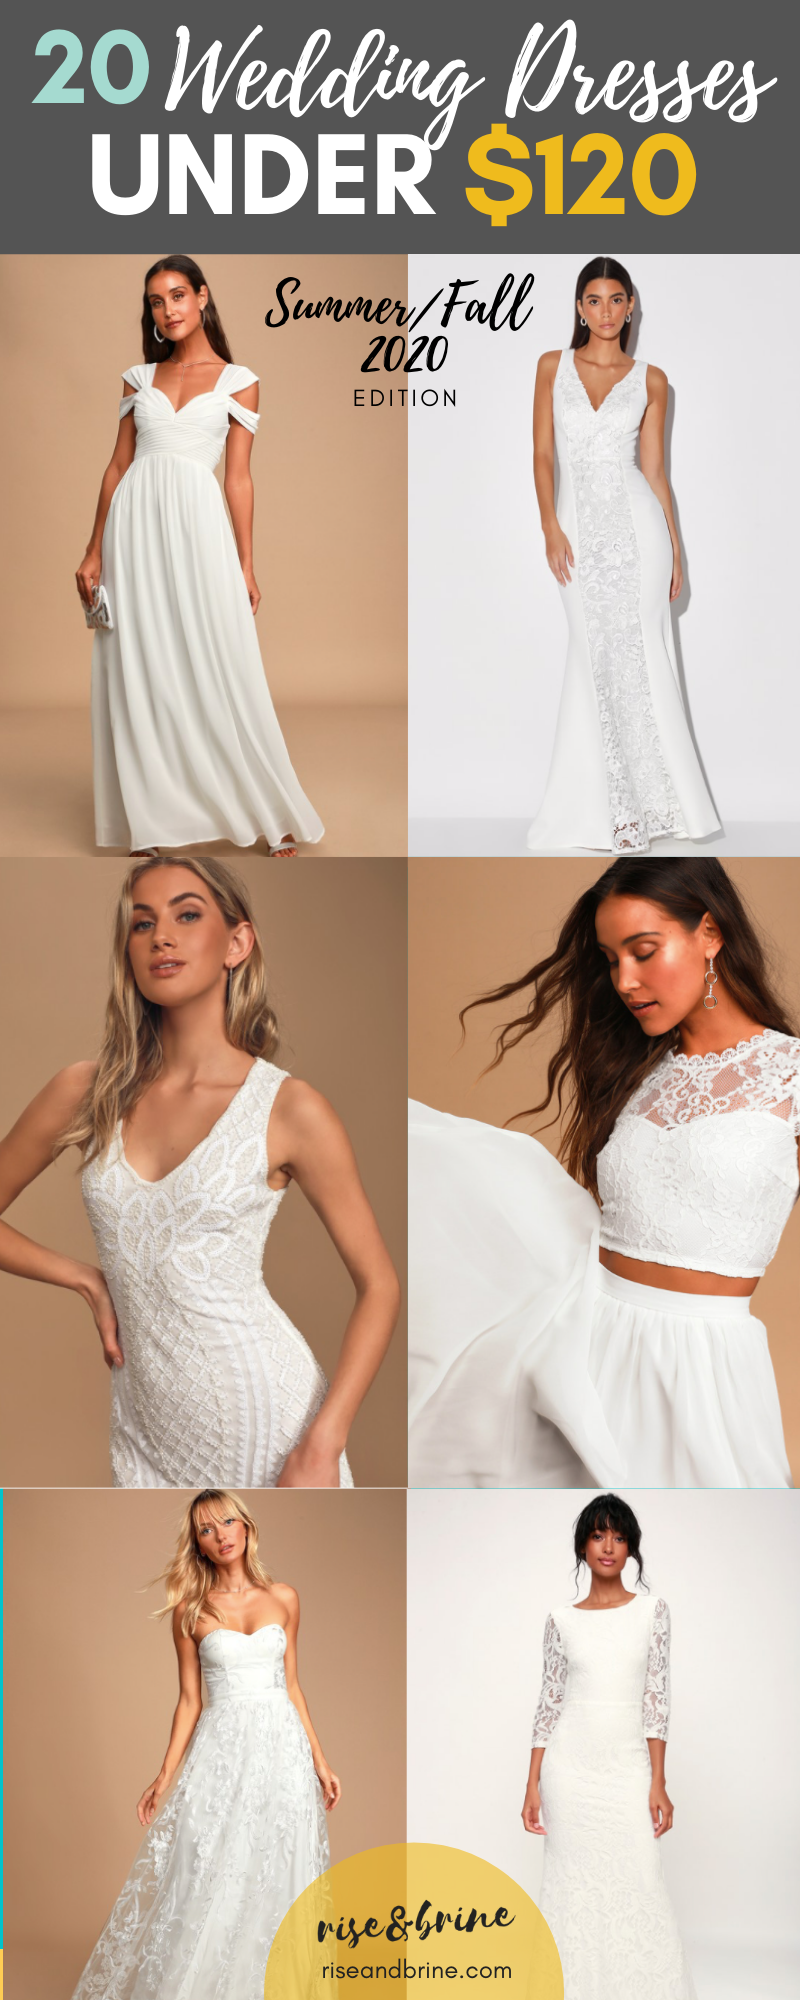 20 wedding dresses under $120 - Summer 2020 Edition